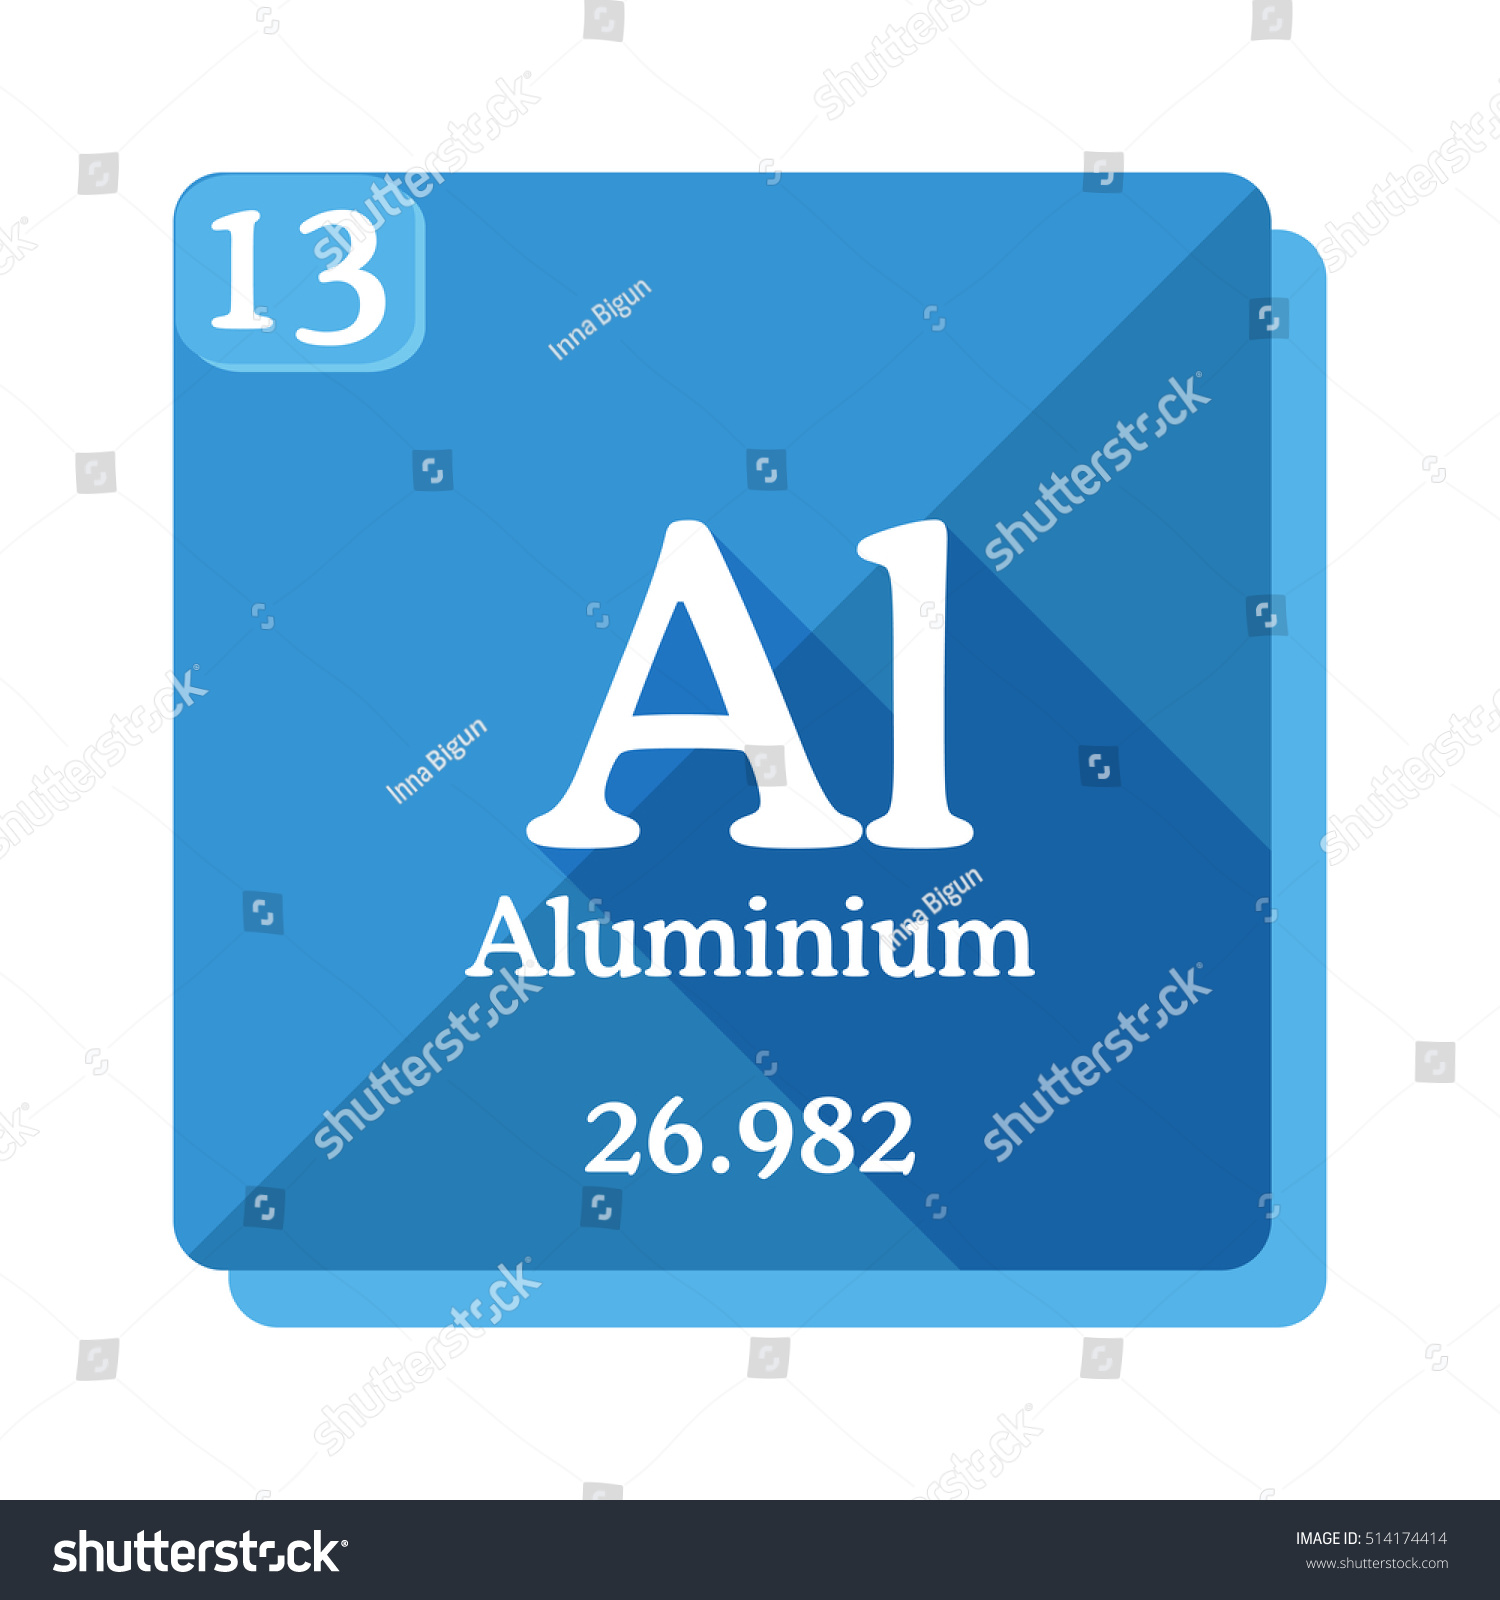 Aluminium al element periodic table vector stock vector 514174414 aluminium al element of the periodic table vector illustration in flat style gamestrikefo Image collections